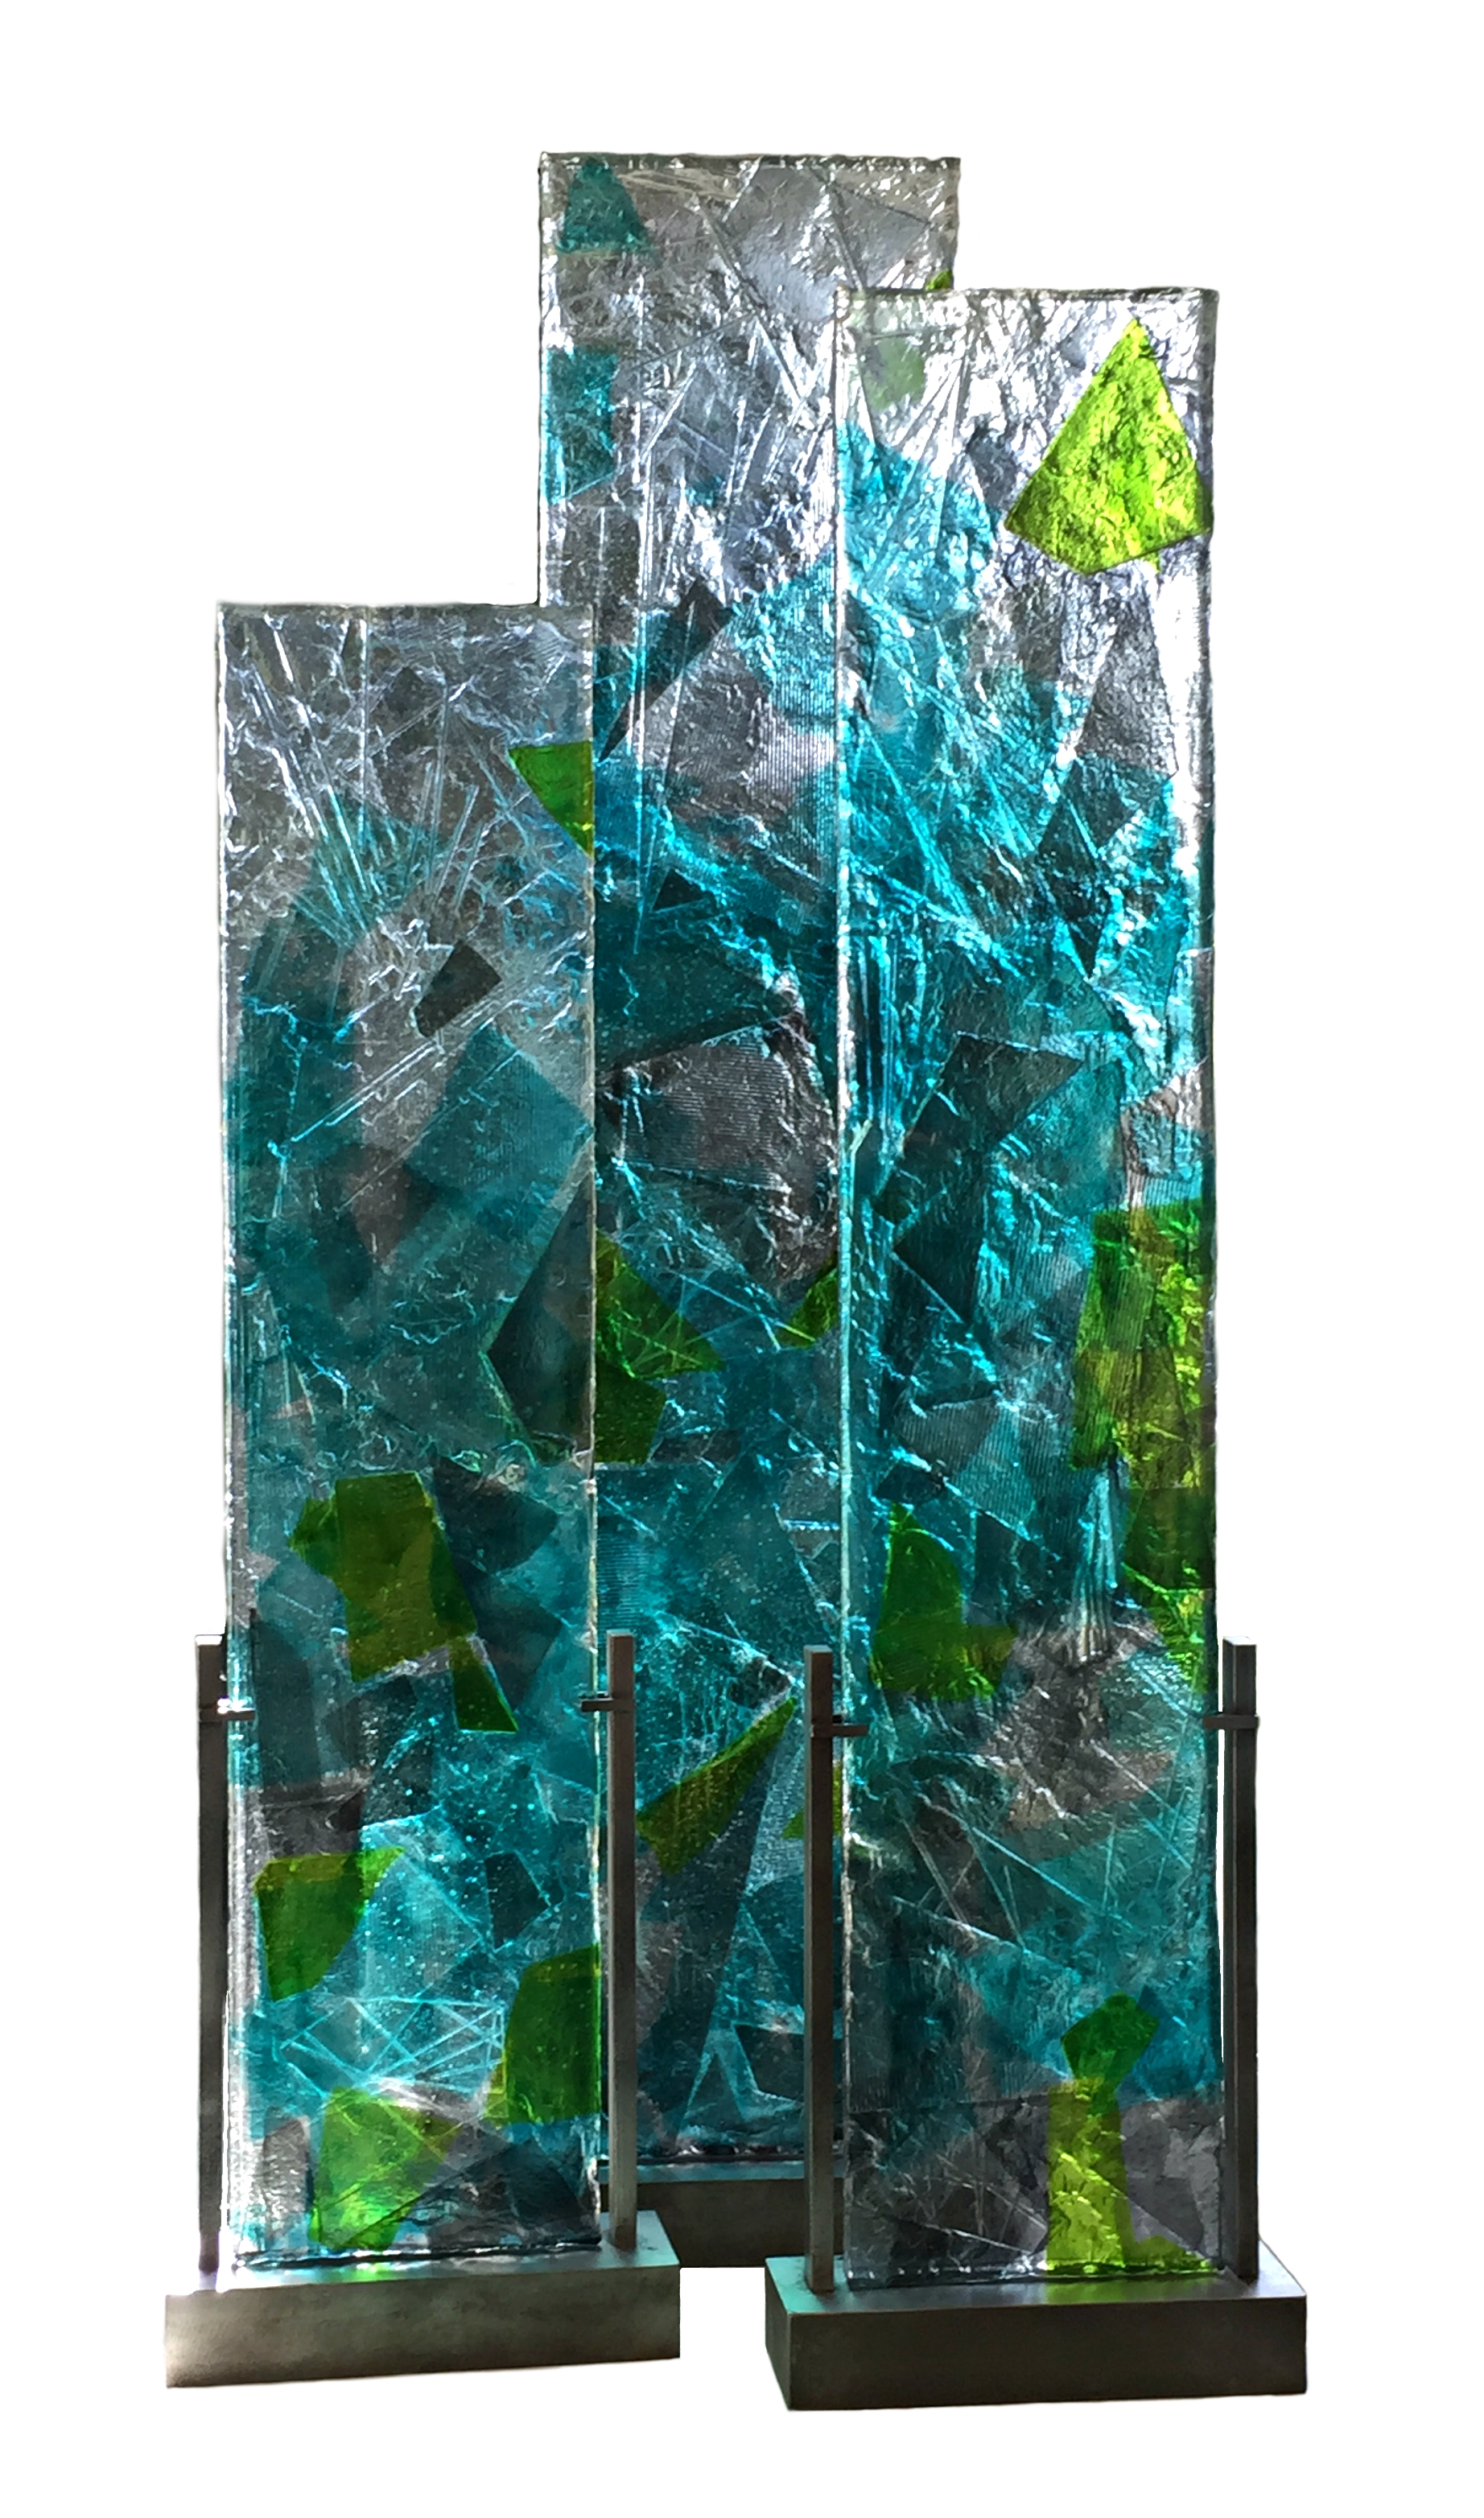 Tranquility, cast glass panels/room dividers by Heather Cuell | Effusion Art Gallery + Cast Glass Studio, Invermere BC